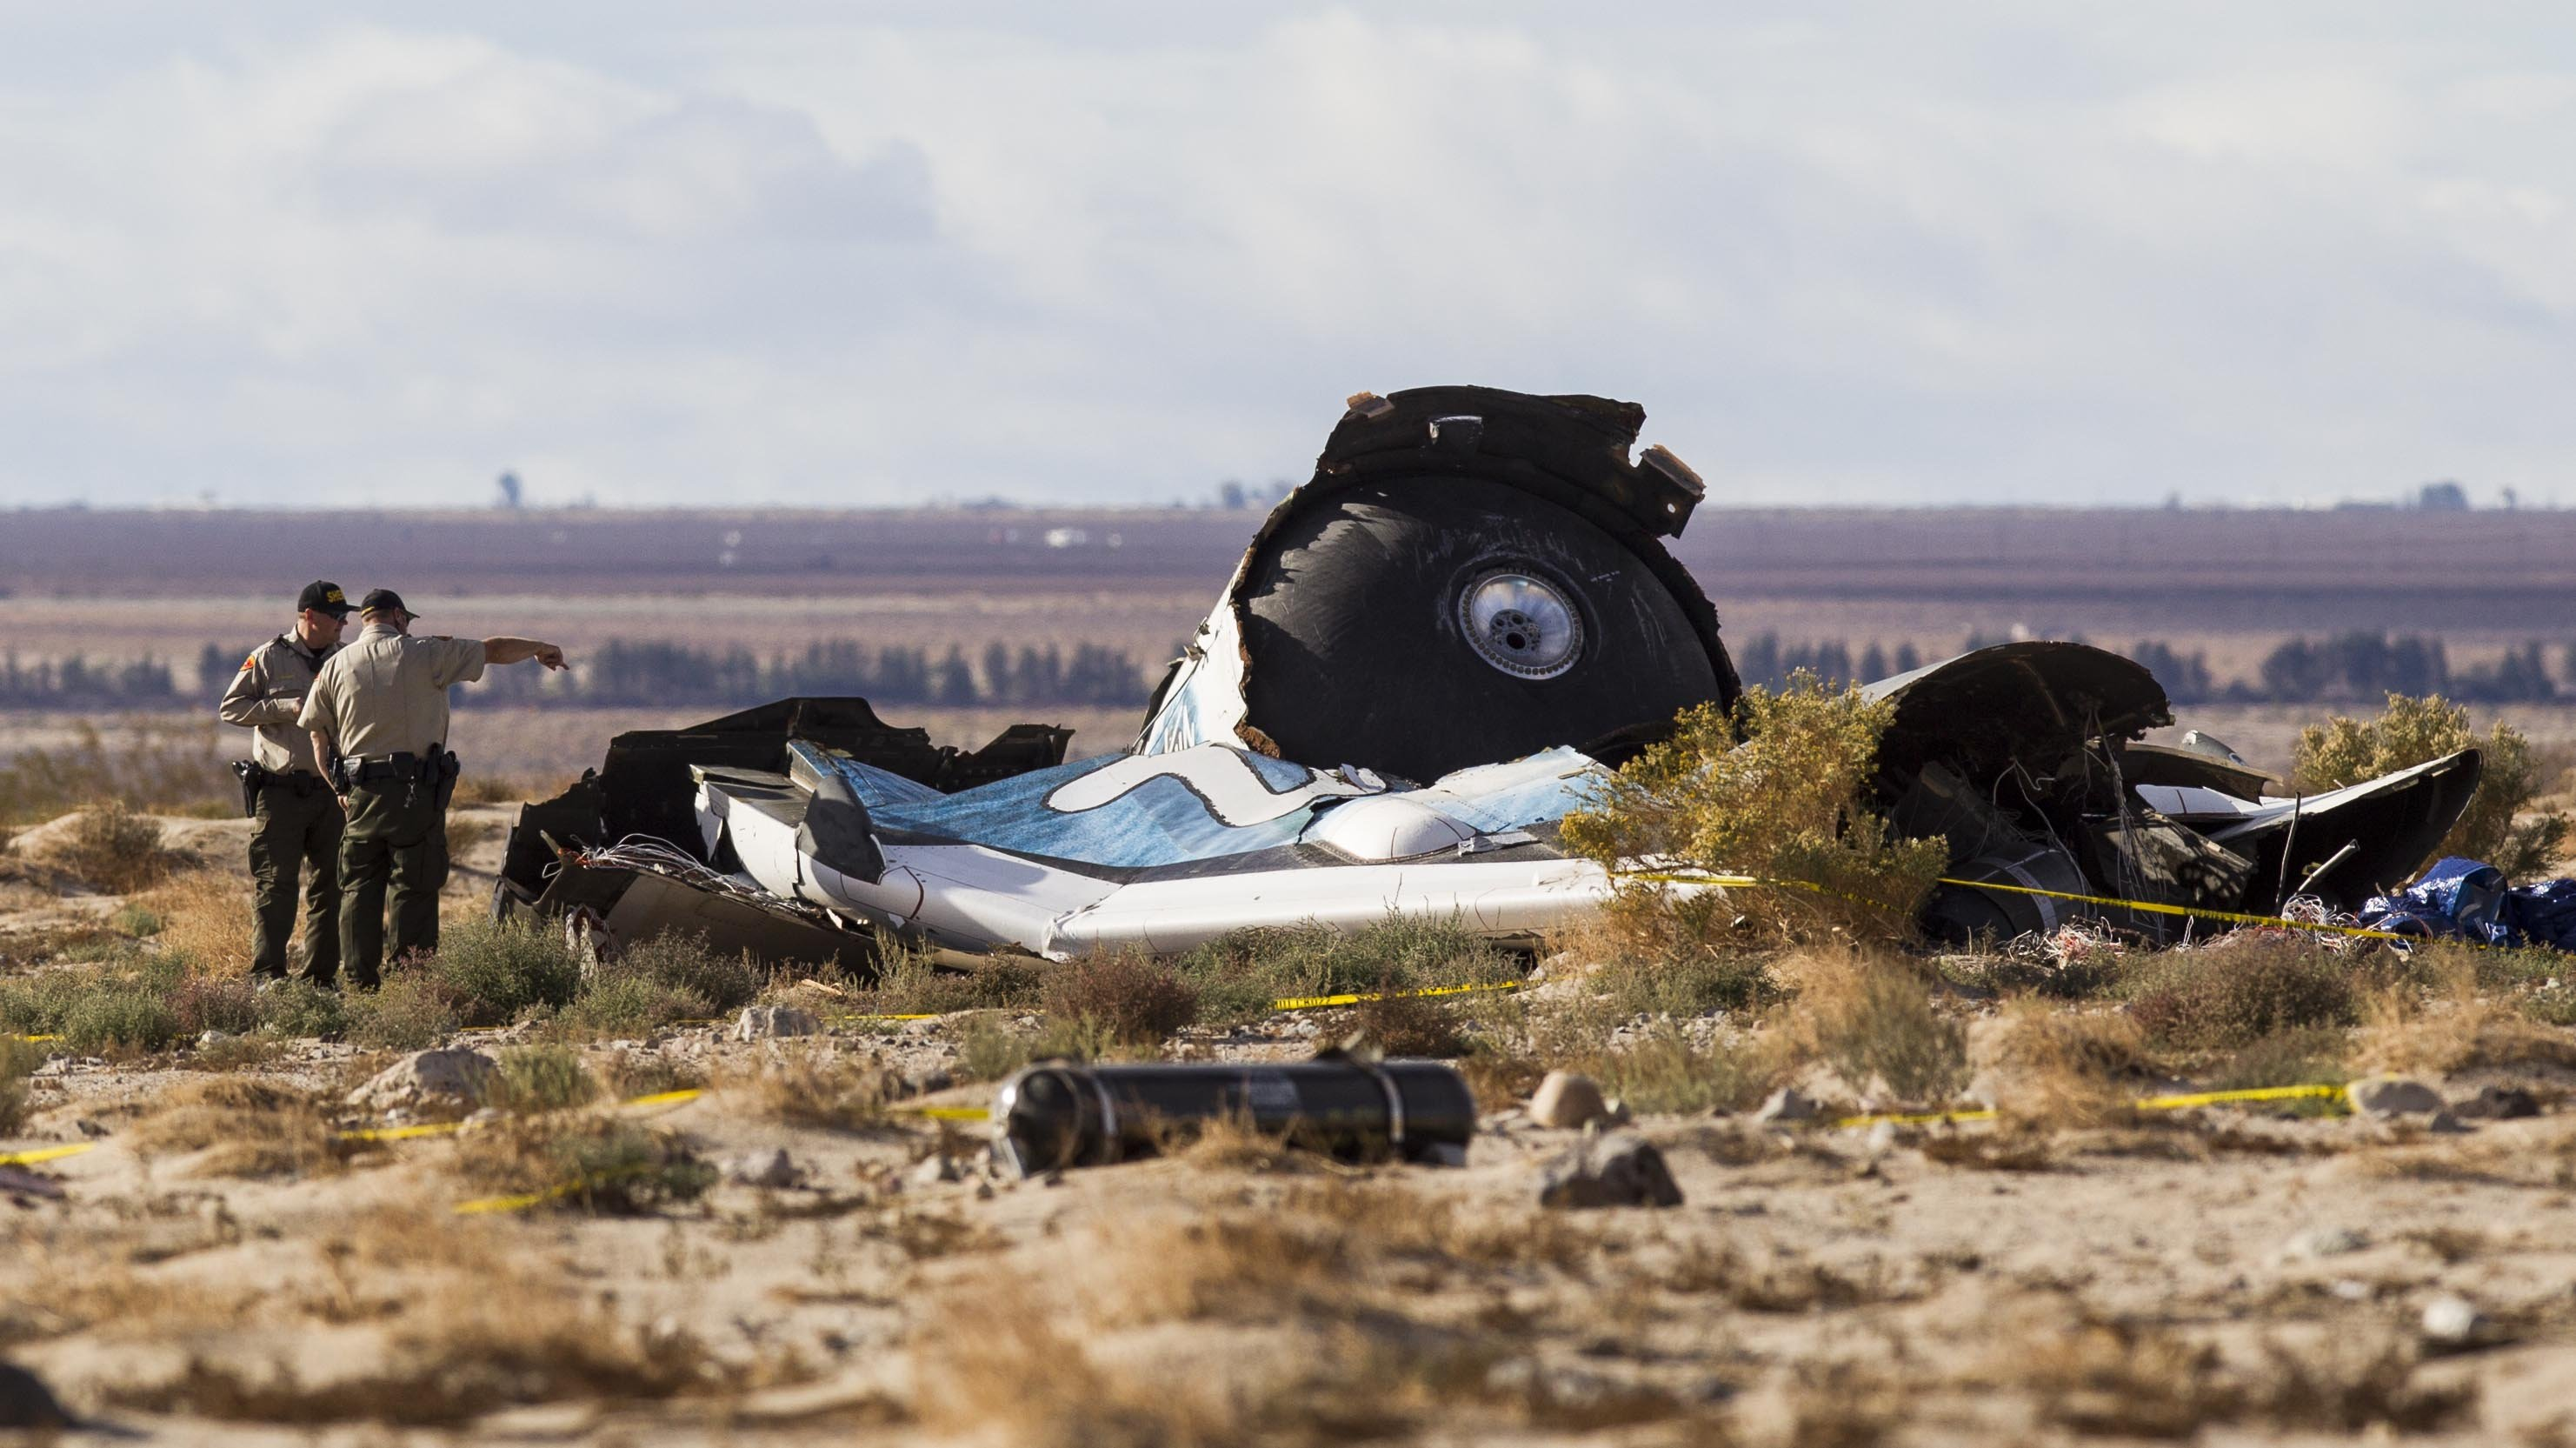 Law enforcement officers take a closer look at the wreckage near the site where a Virgin Galactic space tourism rocket, SpaceShipTwo, exploded and crashed in Mojave, Calif. on Nov 1, 2014.